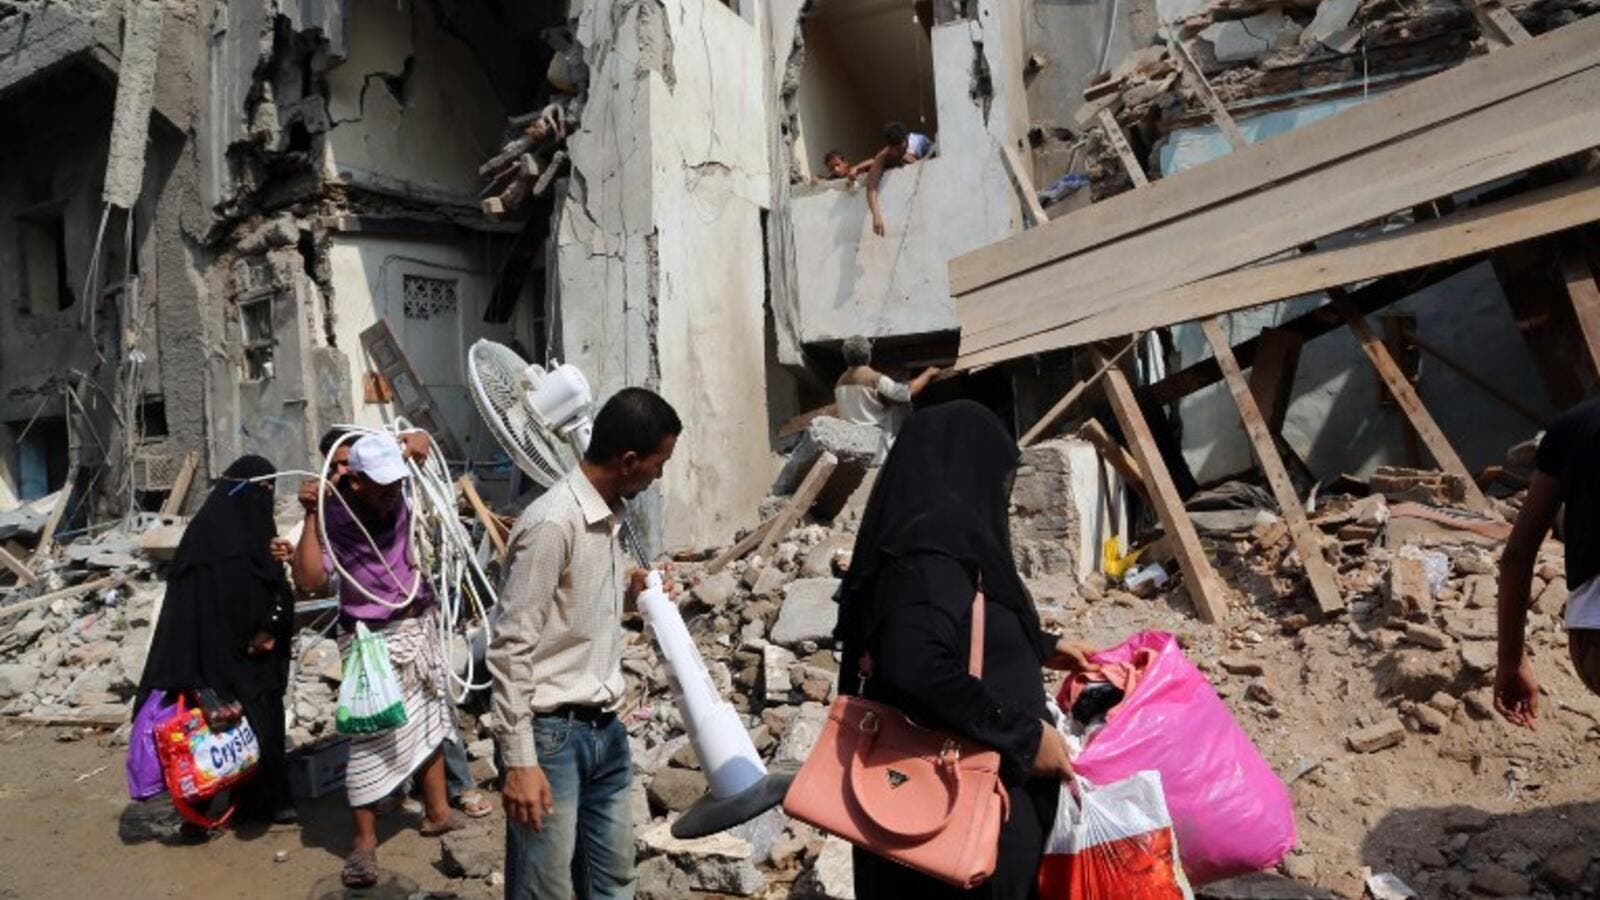 Yemenis carry belongings they recovered from the rubble of buildings destroyed during Saudi-led air strikes the previous day, on September 22, 2016 in the rebel-held Yemeni port city of Hodeida. (AFP/Stringer)